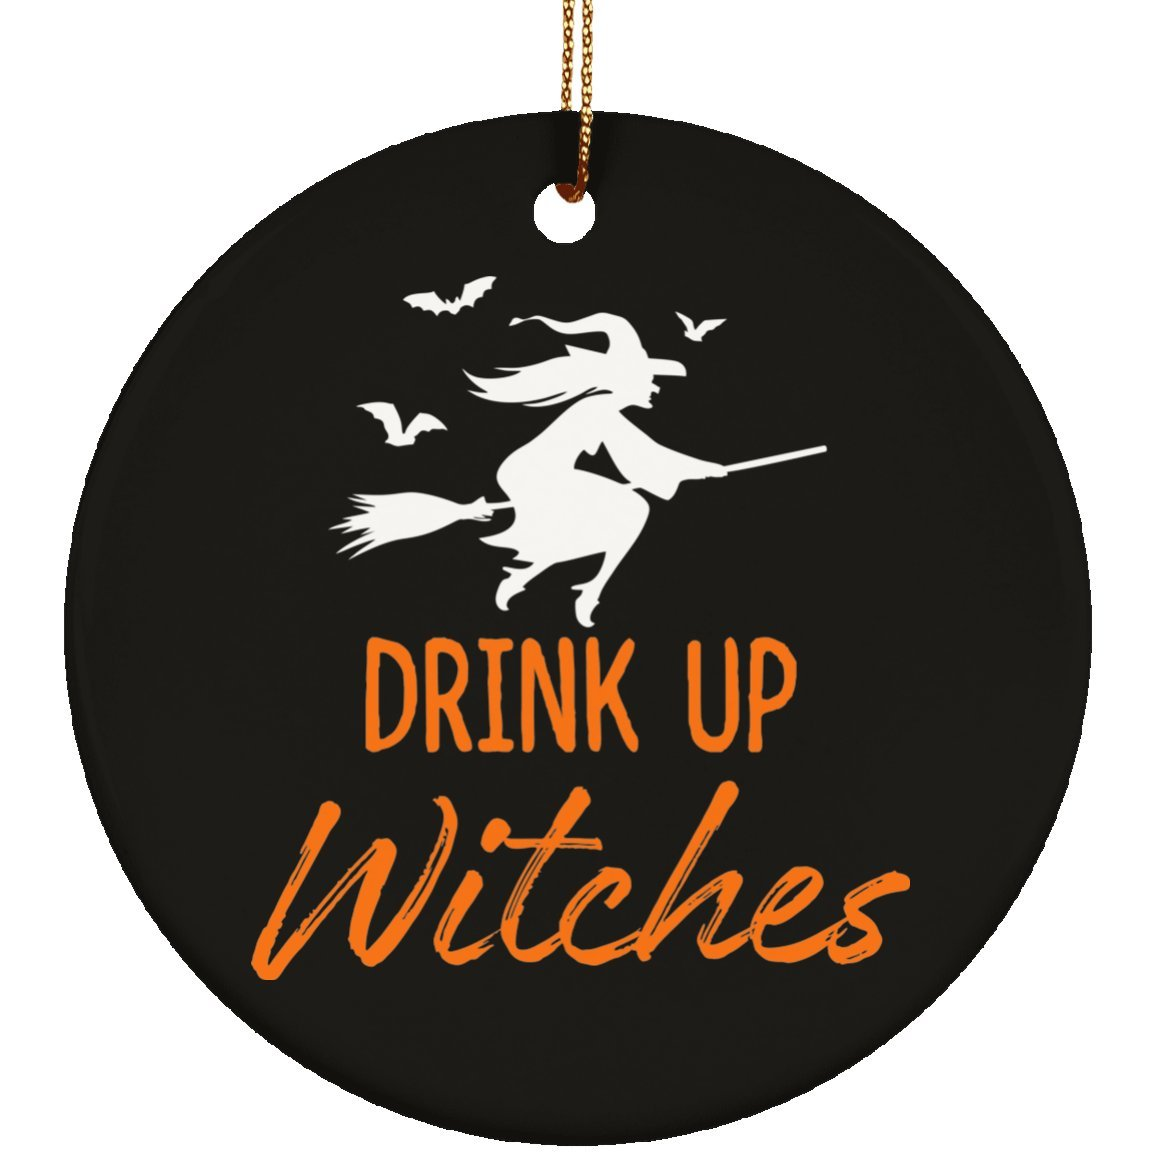 Living You Co. Drink Up Witches Halloween Ornament Ceramic Circle Shape 3 Inches (Black)